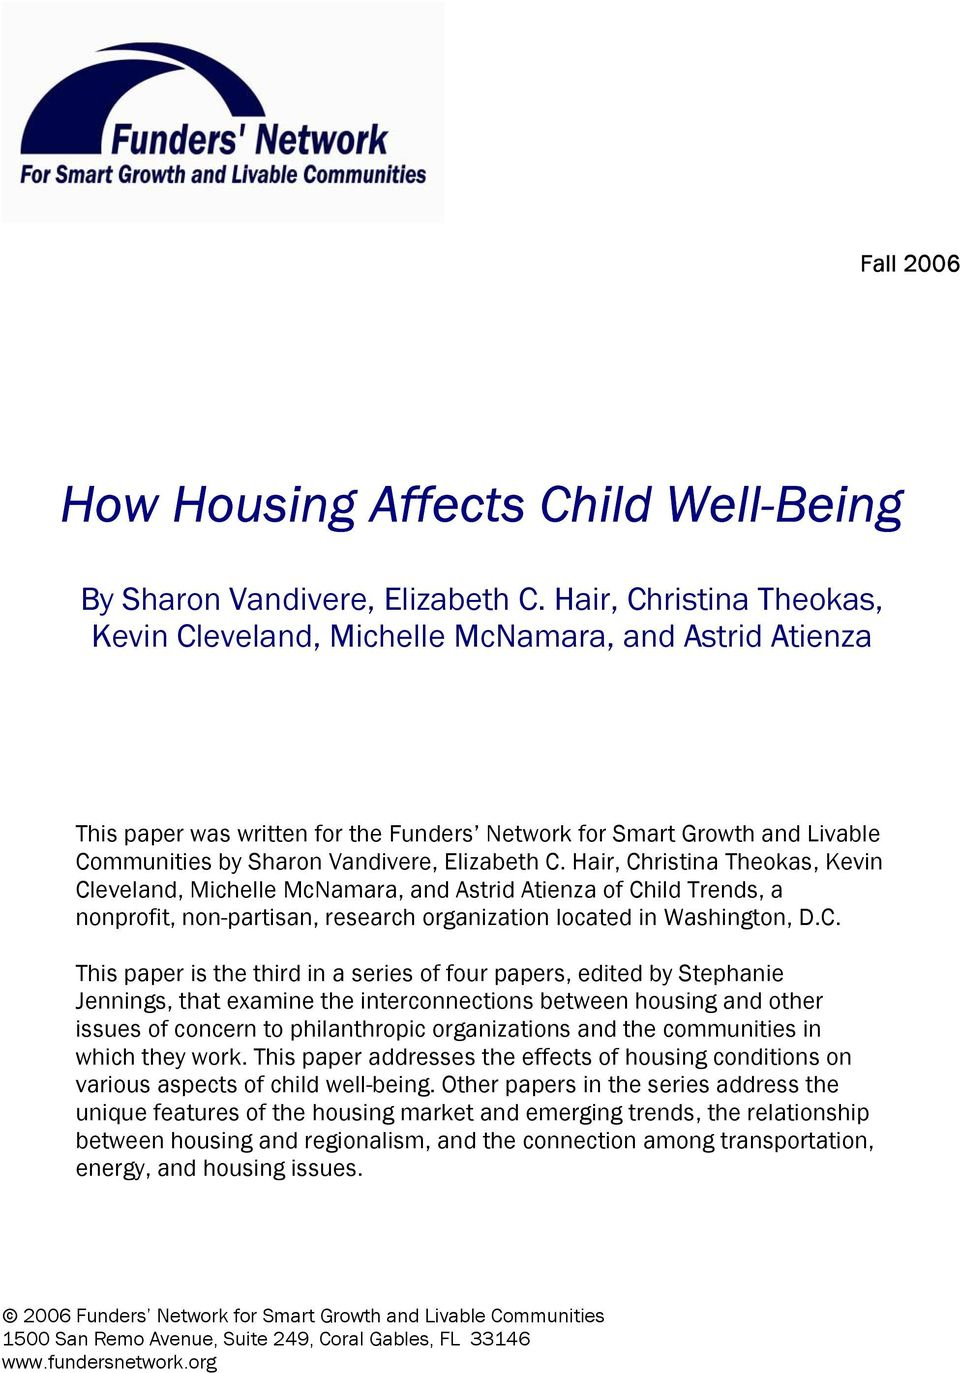 C. Hair, Christina Theokas, Kevin Cleveland, Michelle McNamara, and Astrid Atienza of Child Trends, a nonprofit, non-partisan, research organization located in Washington, D.C. This paper is the